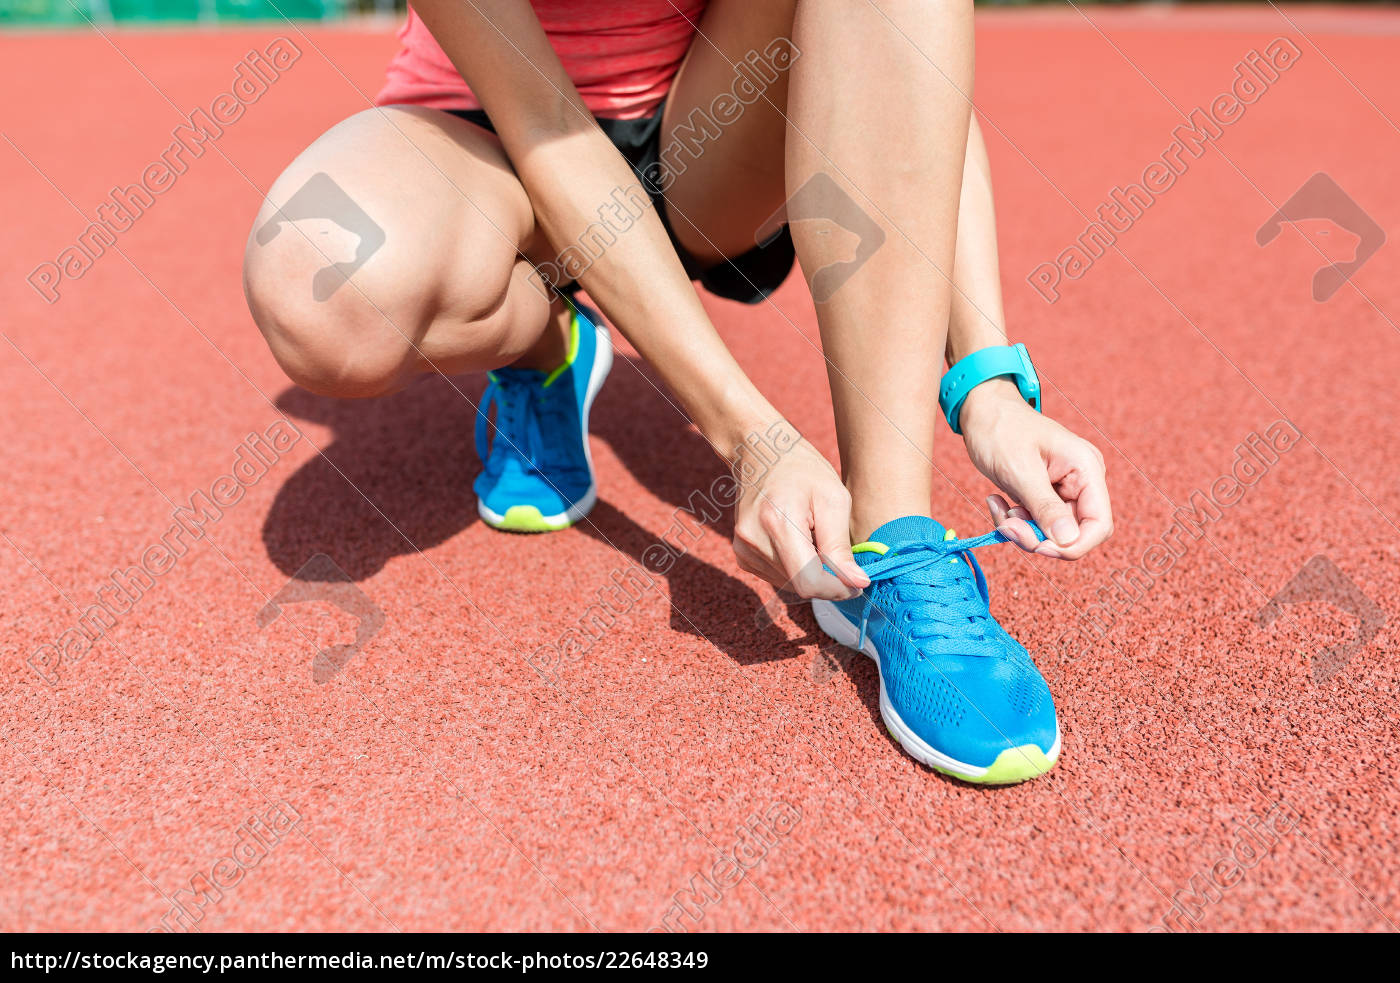 woman, tying, shoelace, on, running, shoes - 22648349